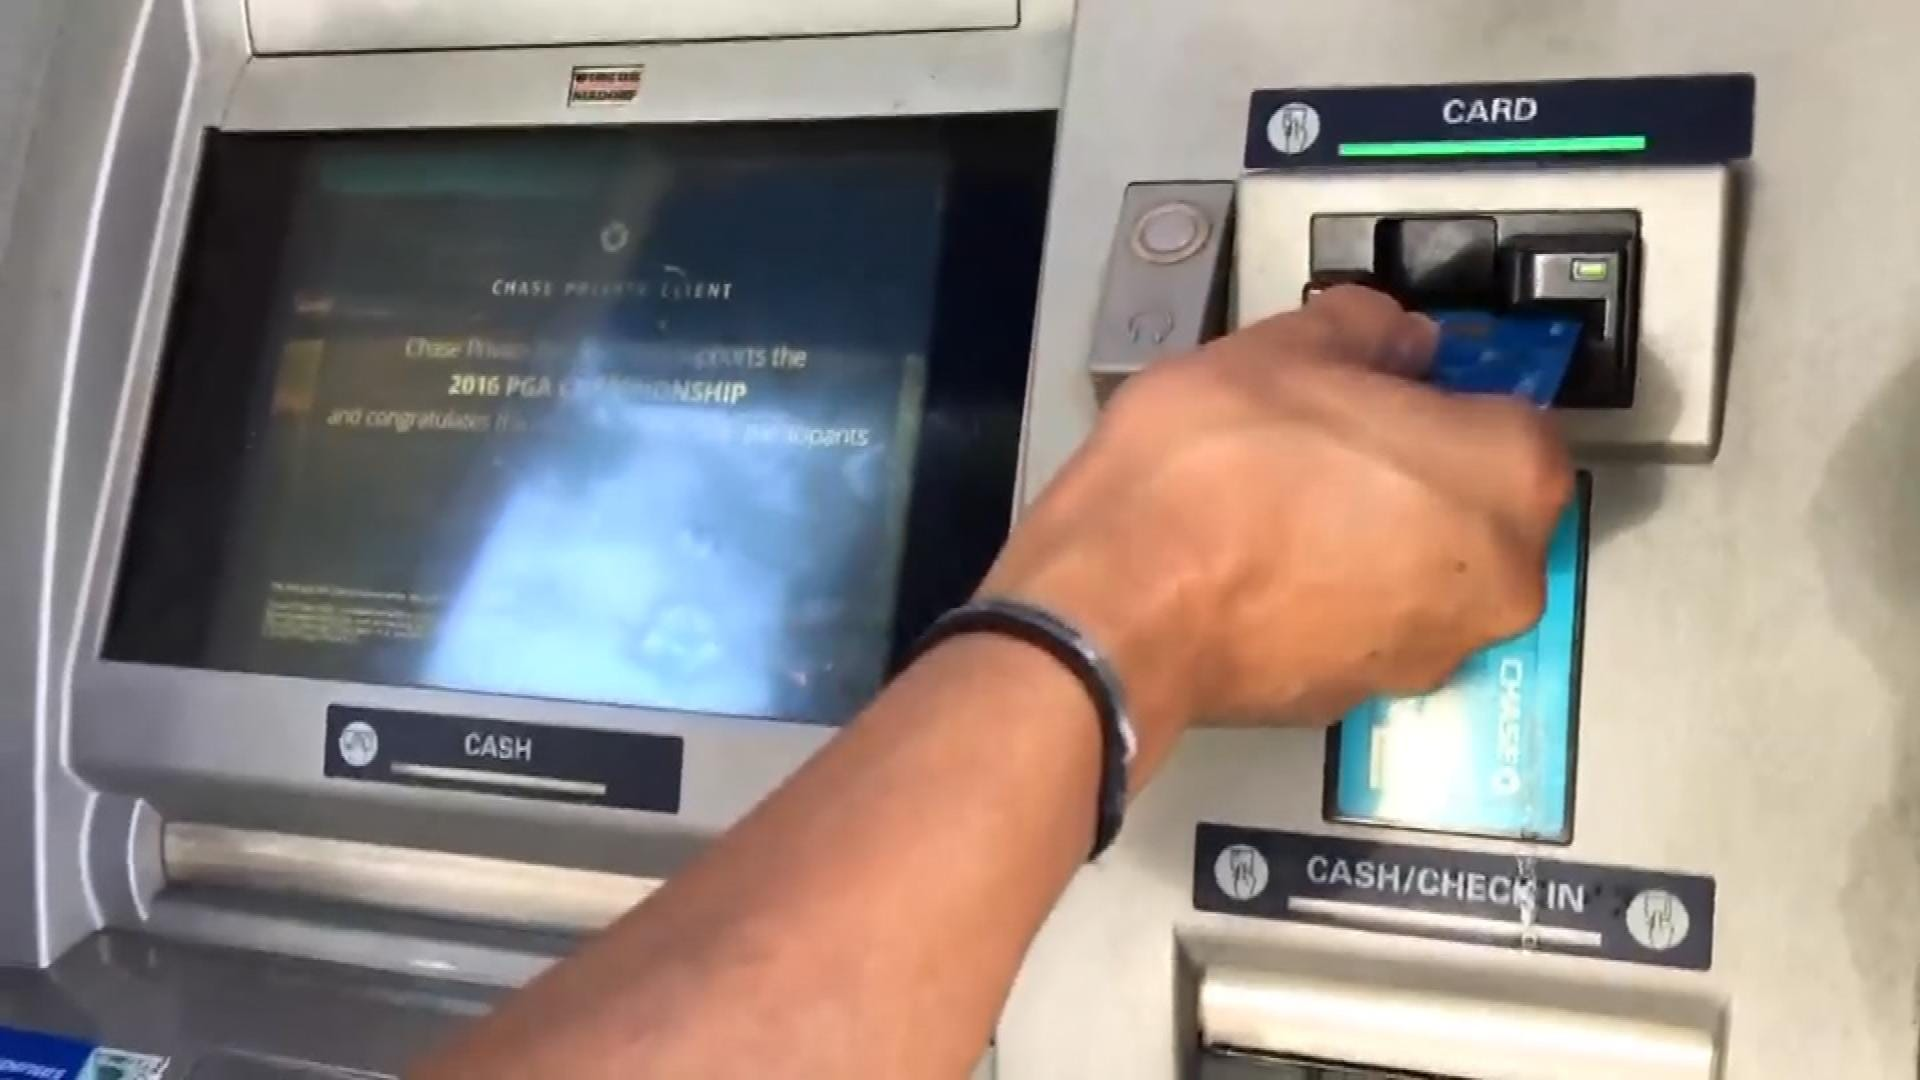 Bank Of America ATM Mistakenly Dispenses $100 Bills Instead Of $10s